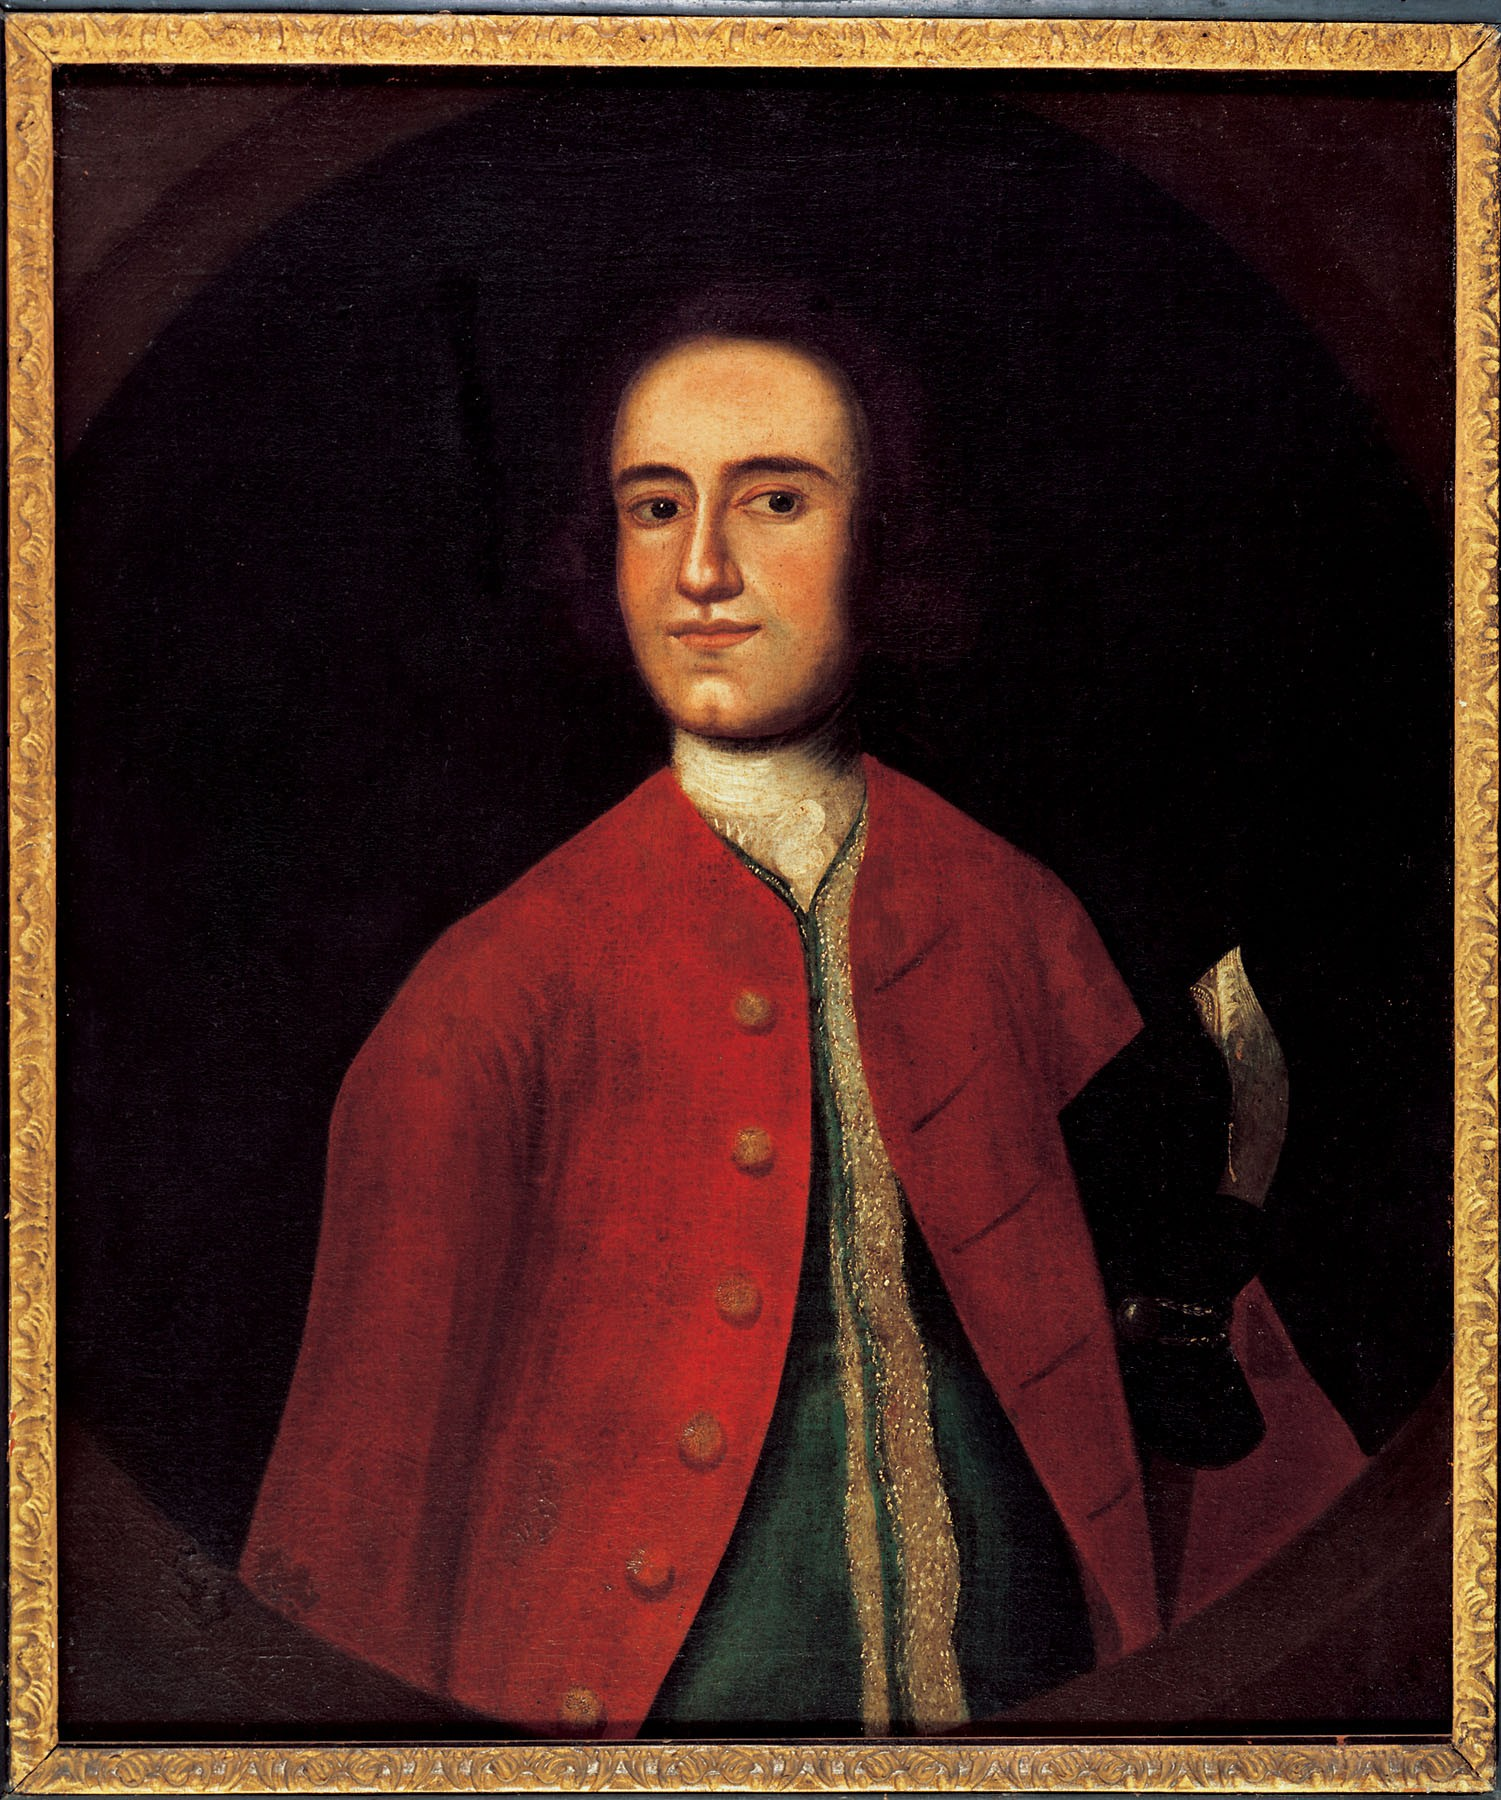 Lawrence Washington, by unknown artist, c. 1743. Purchase, 1936 [W-126]